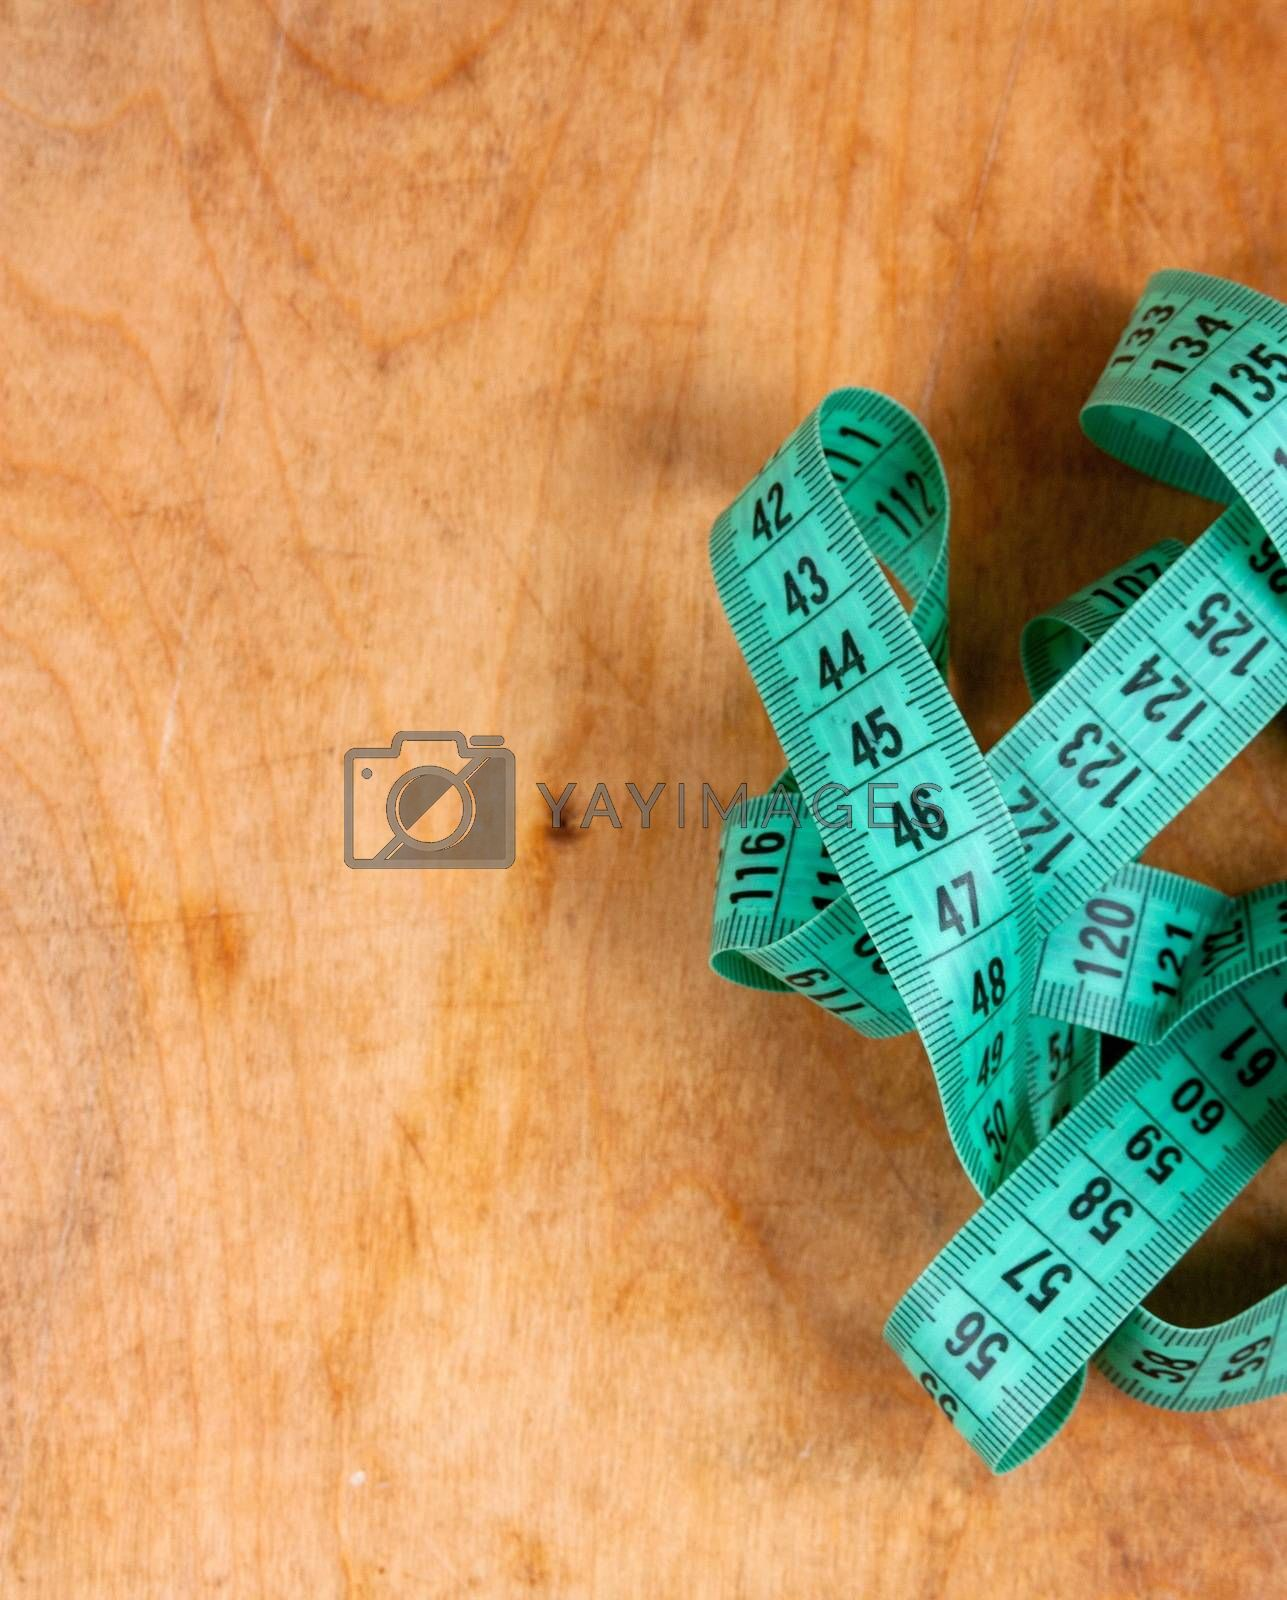 Measuring tape on the wooden background